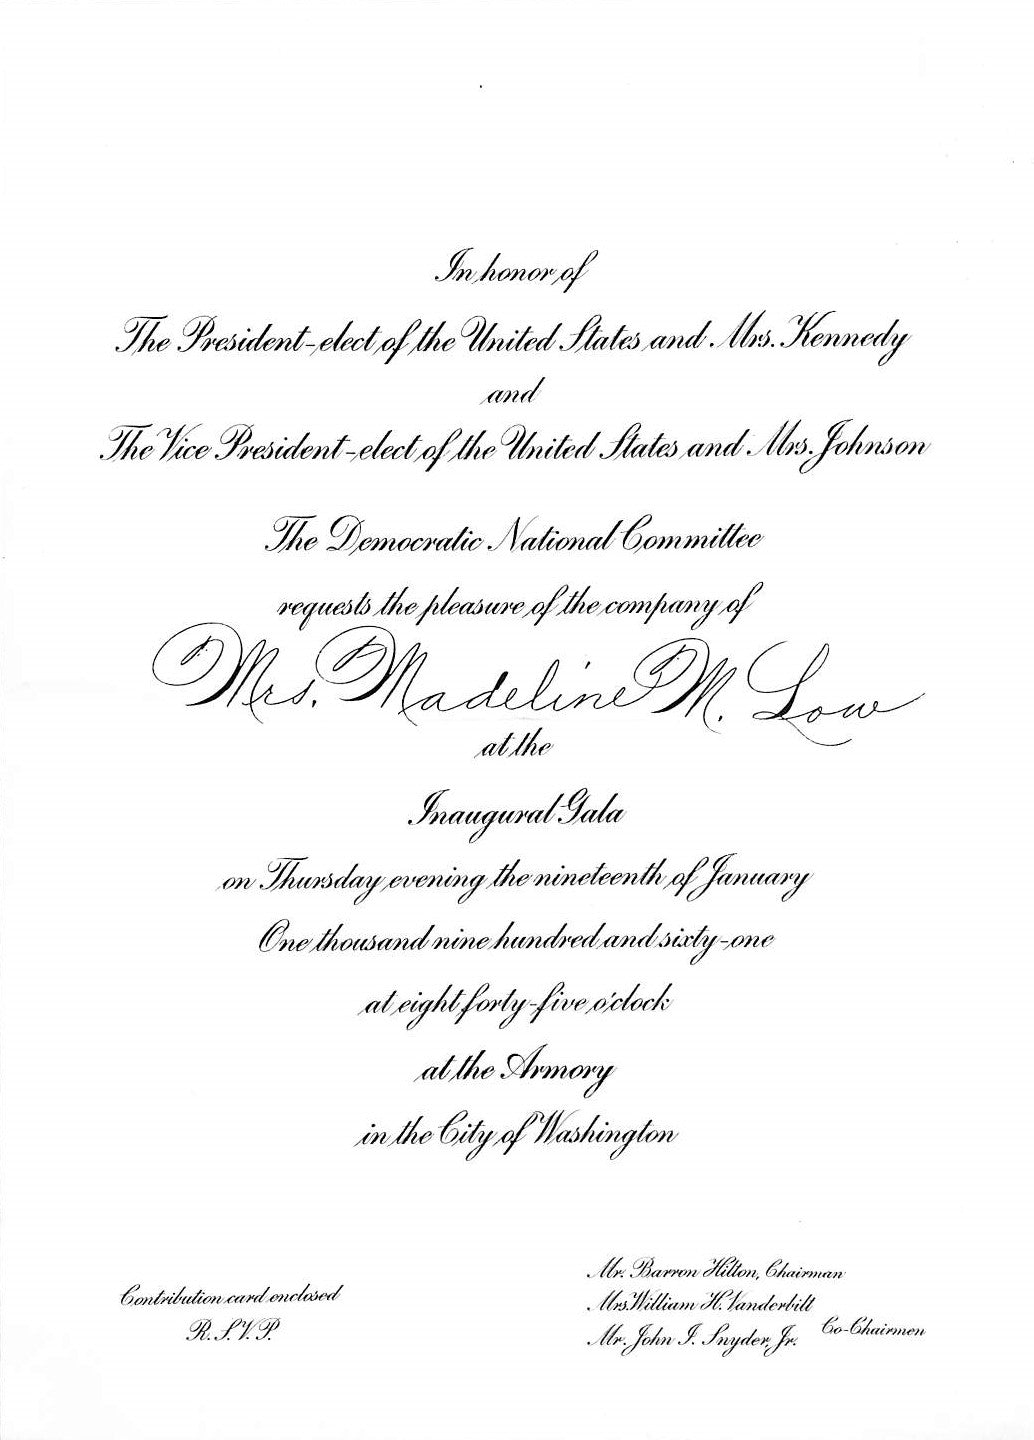 Inaugural J.F. Kennedy Gala 1/19/1961 Invitation